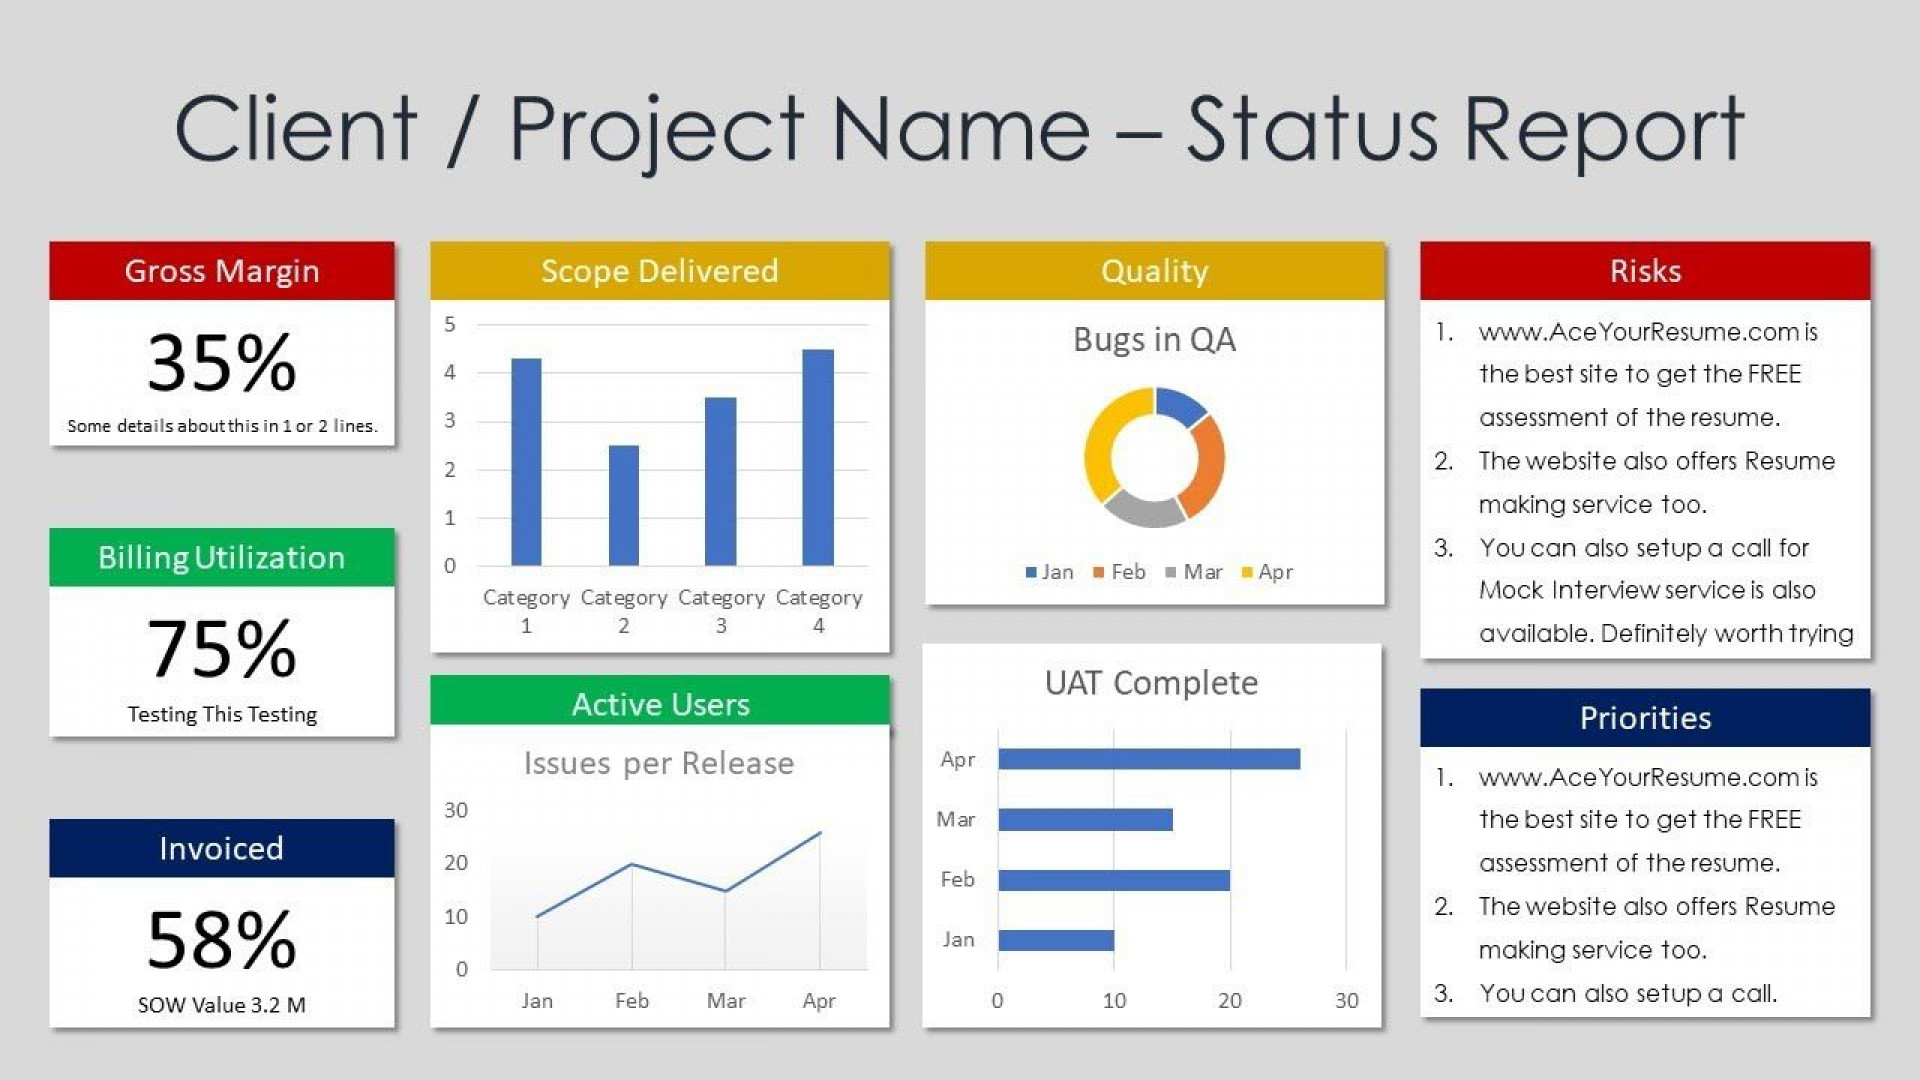 006 Astounding Project Management Statu Report Template Powerpoint Image  Template+powerpoint Ppt1920